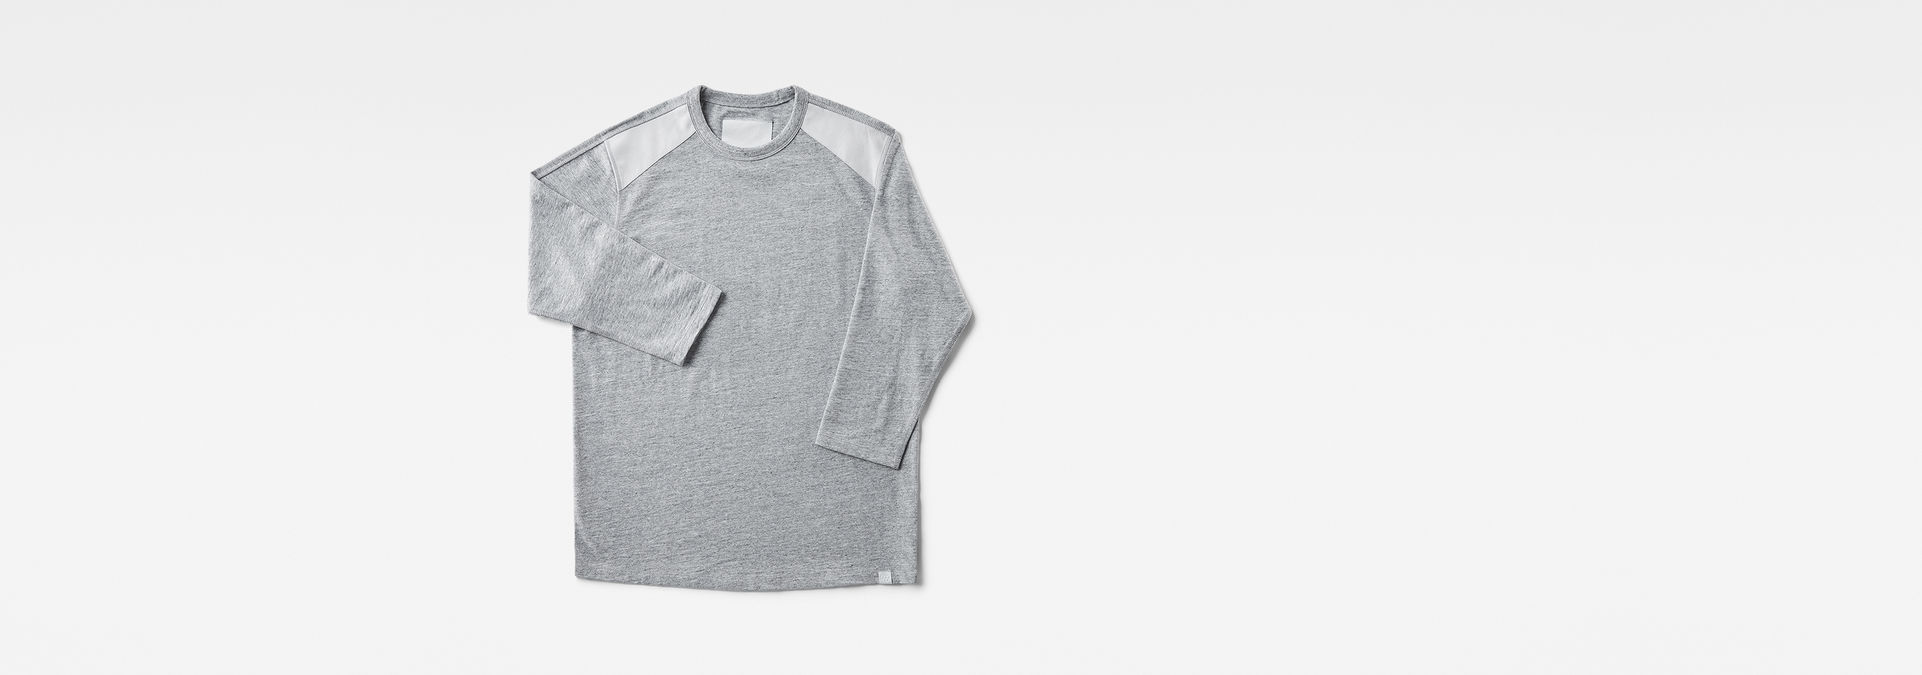 Marc Newson Leather Patch 34 Sleeve T Shirt   G Star RAW®